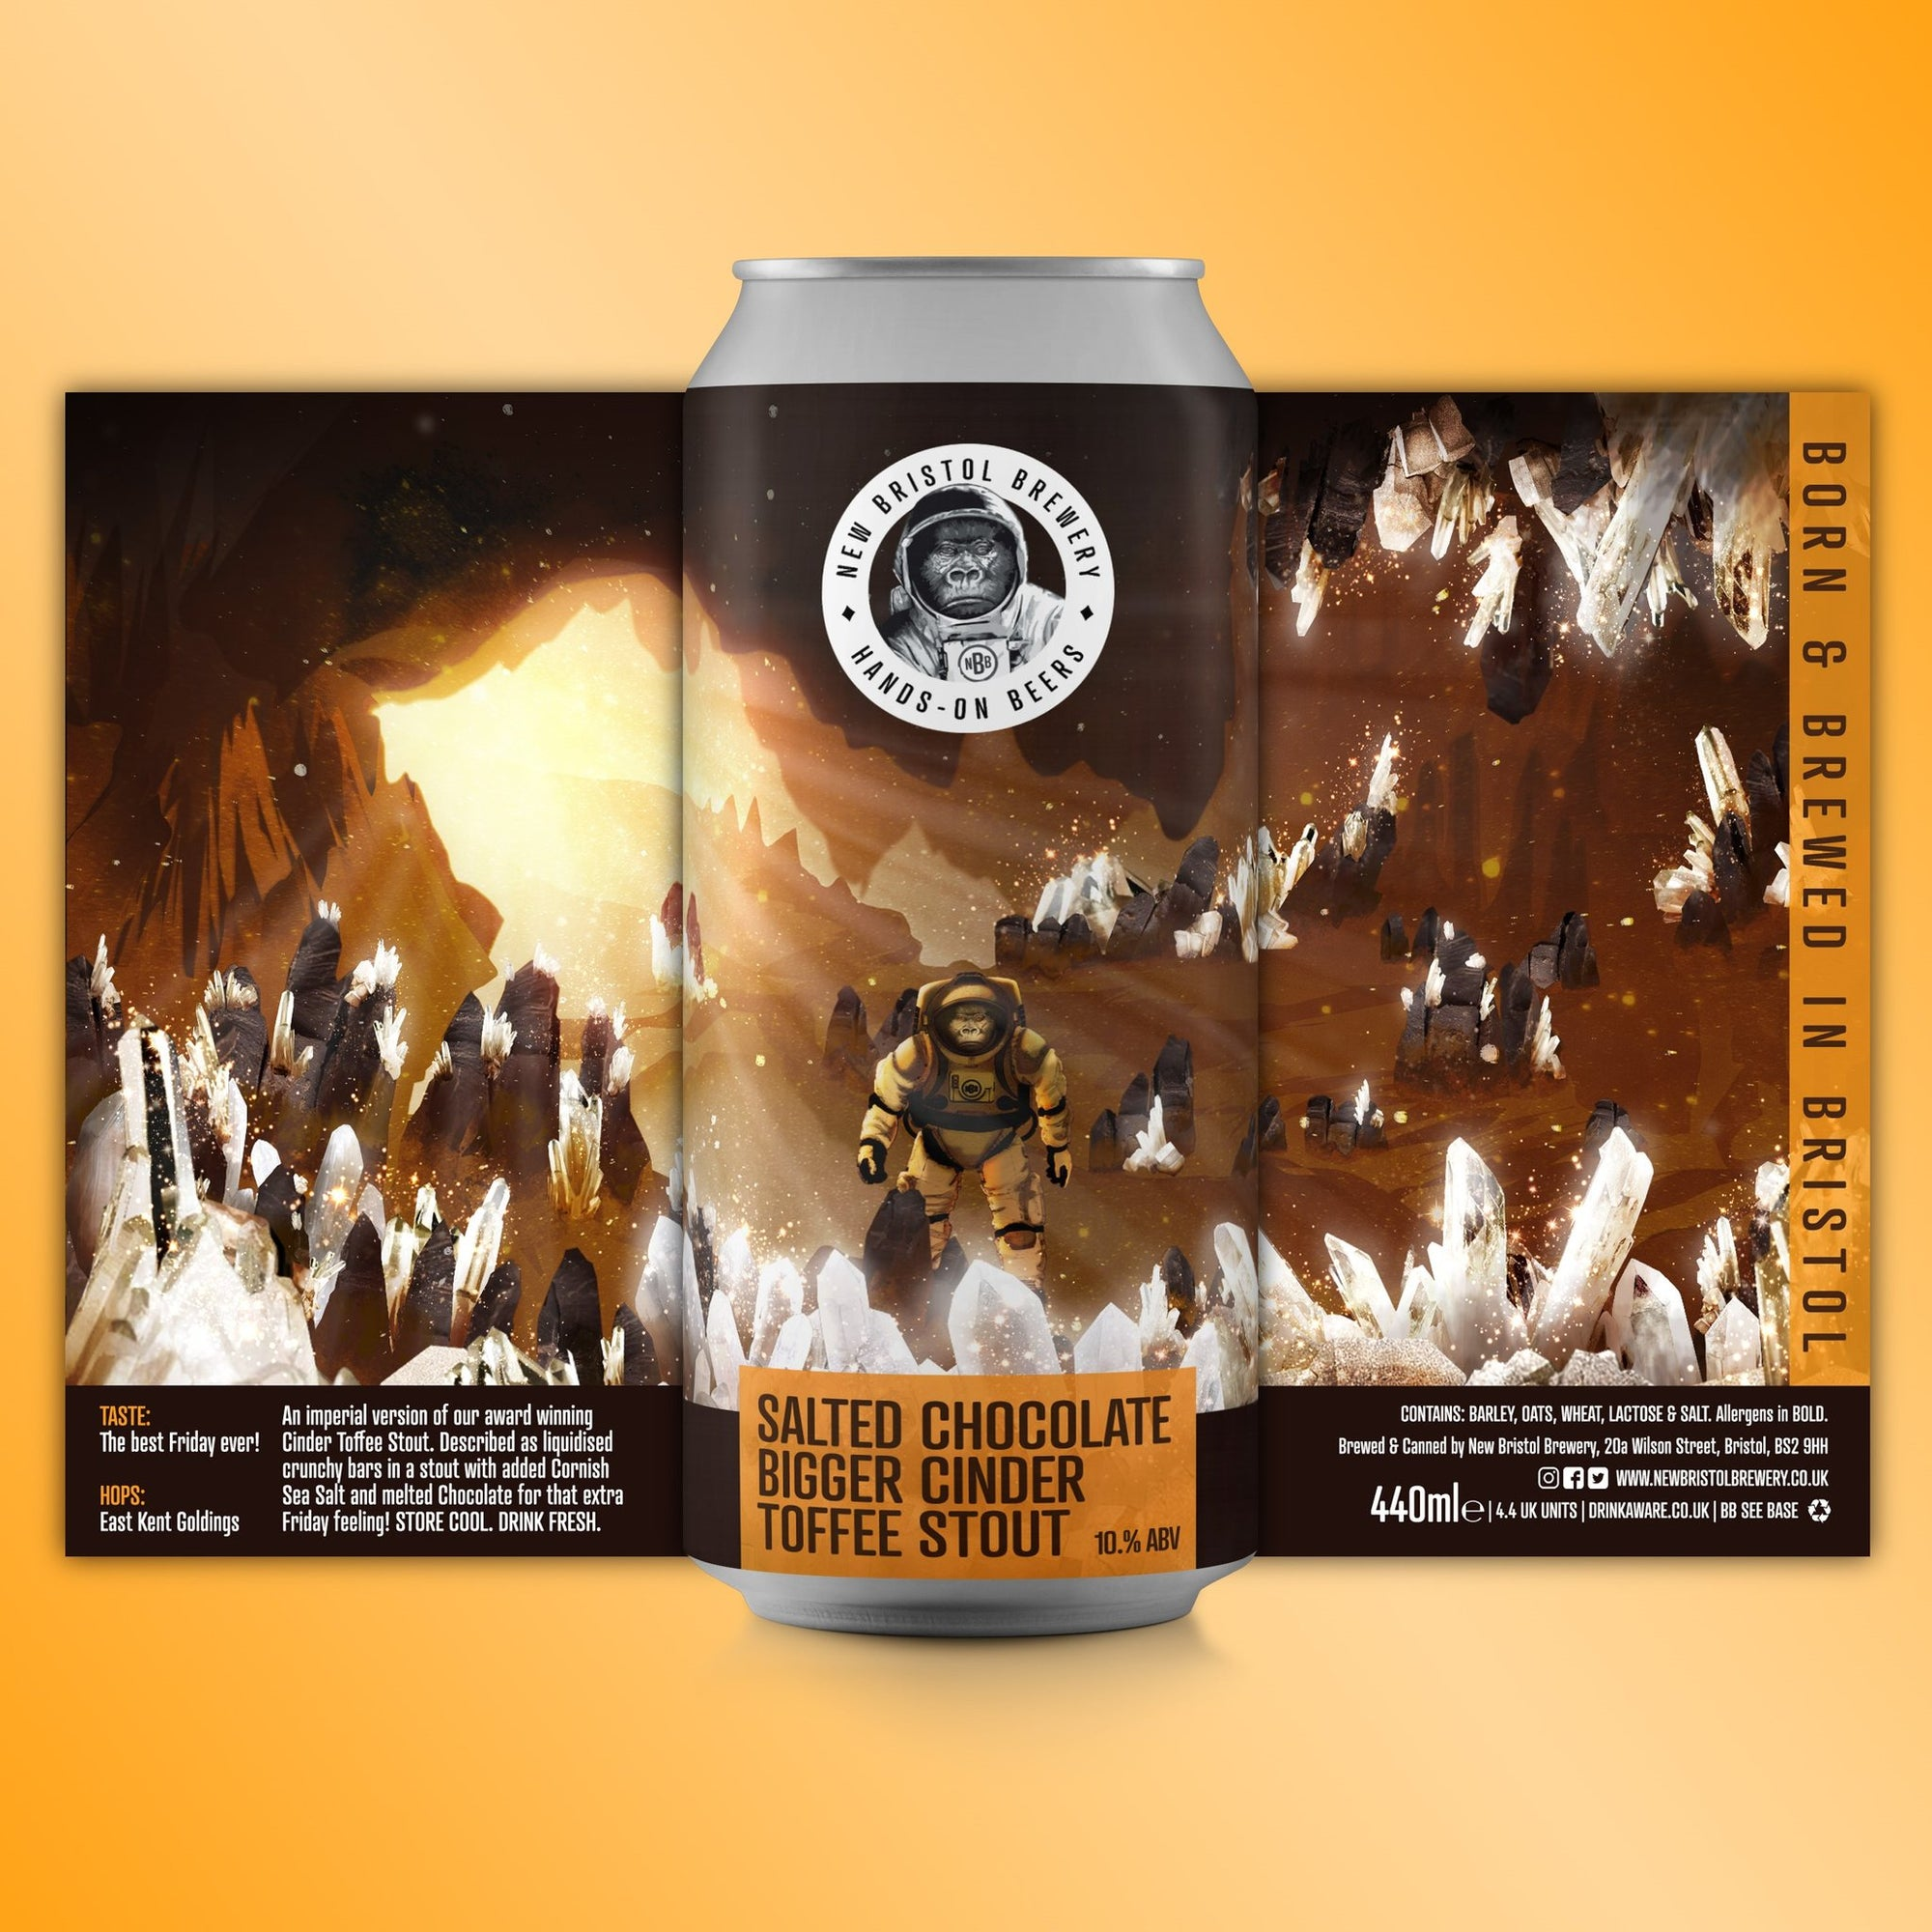 New Bristol Brewery - Salted Caramel Bigger Cinder Toffee Stout - 440ml Can